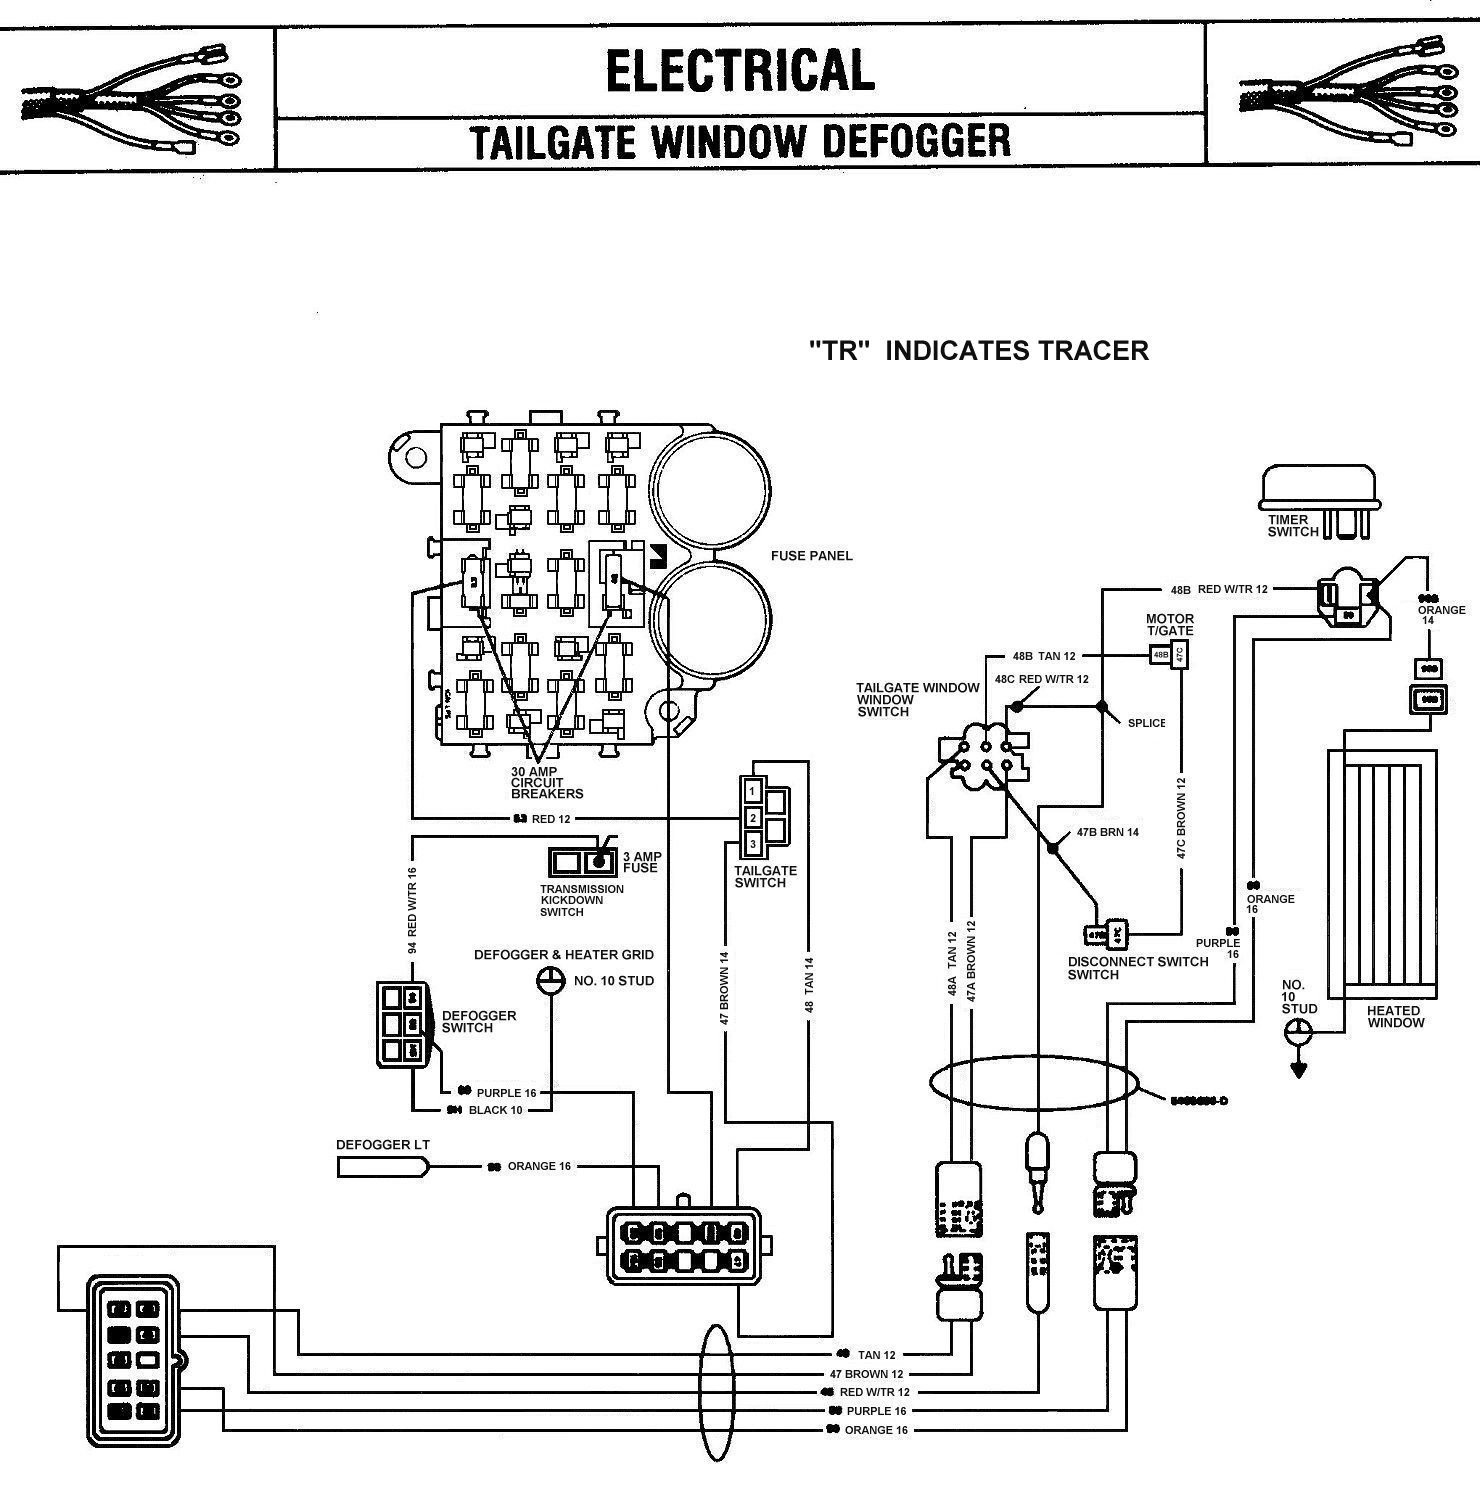 tom oljeep collins fsj wiring page rh oljeep com Jeep CJ7 Engine Diagram Jeep Wrangler Wiring Harness Diagram